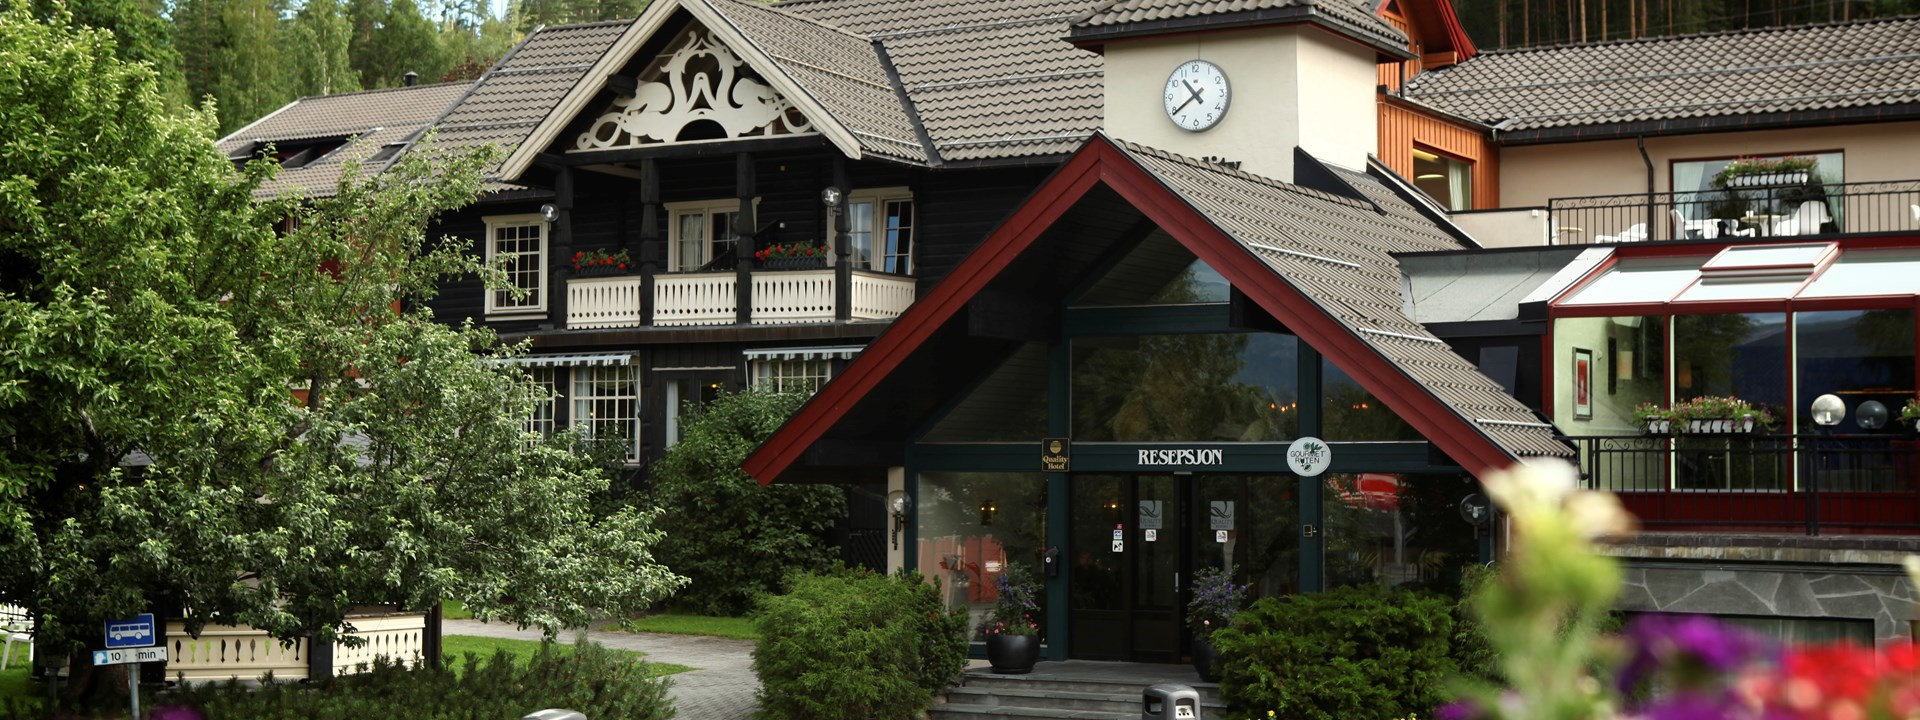 Inngangsparti Straand hotell